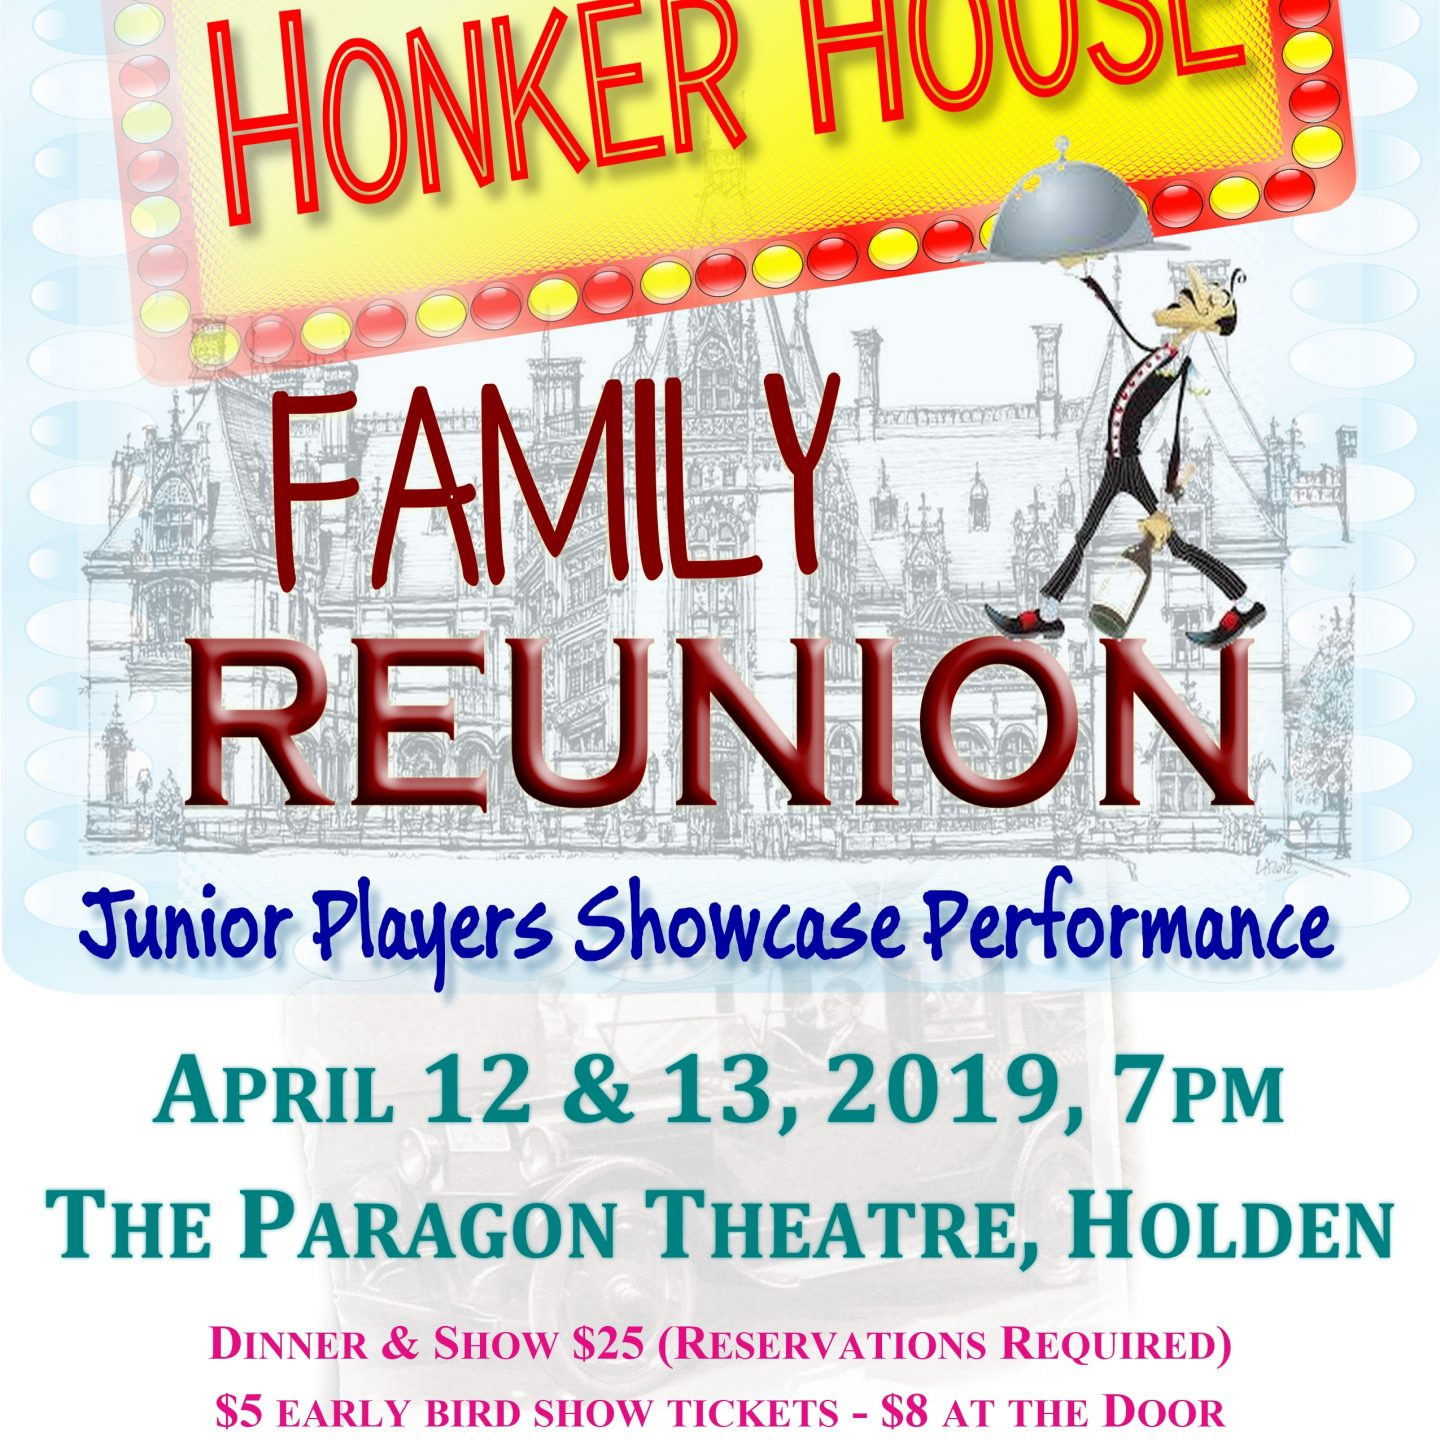 The 2019 Junior Players Showcase & Honker House Family Reunion is this April 12th & 13th!